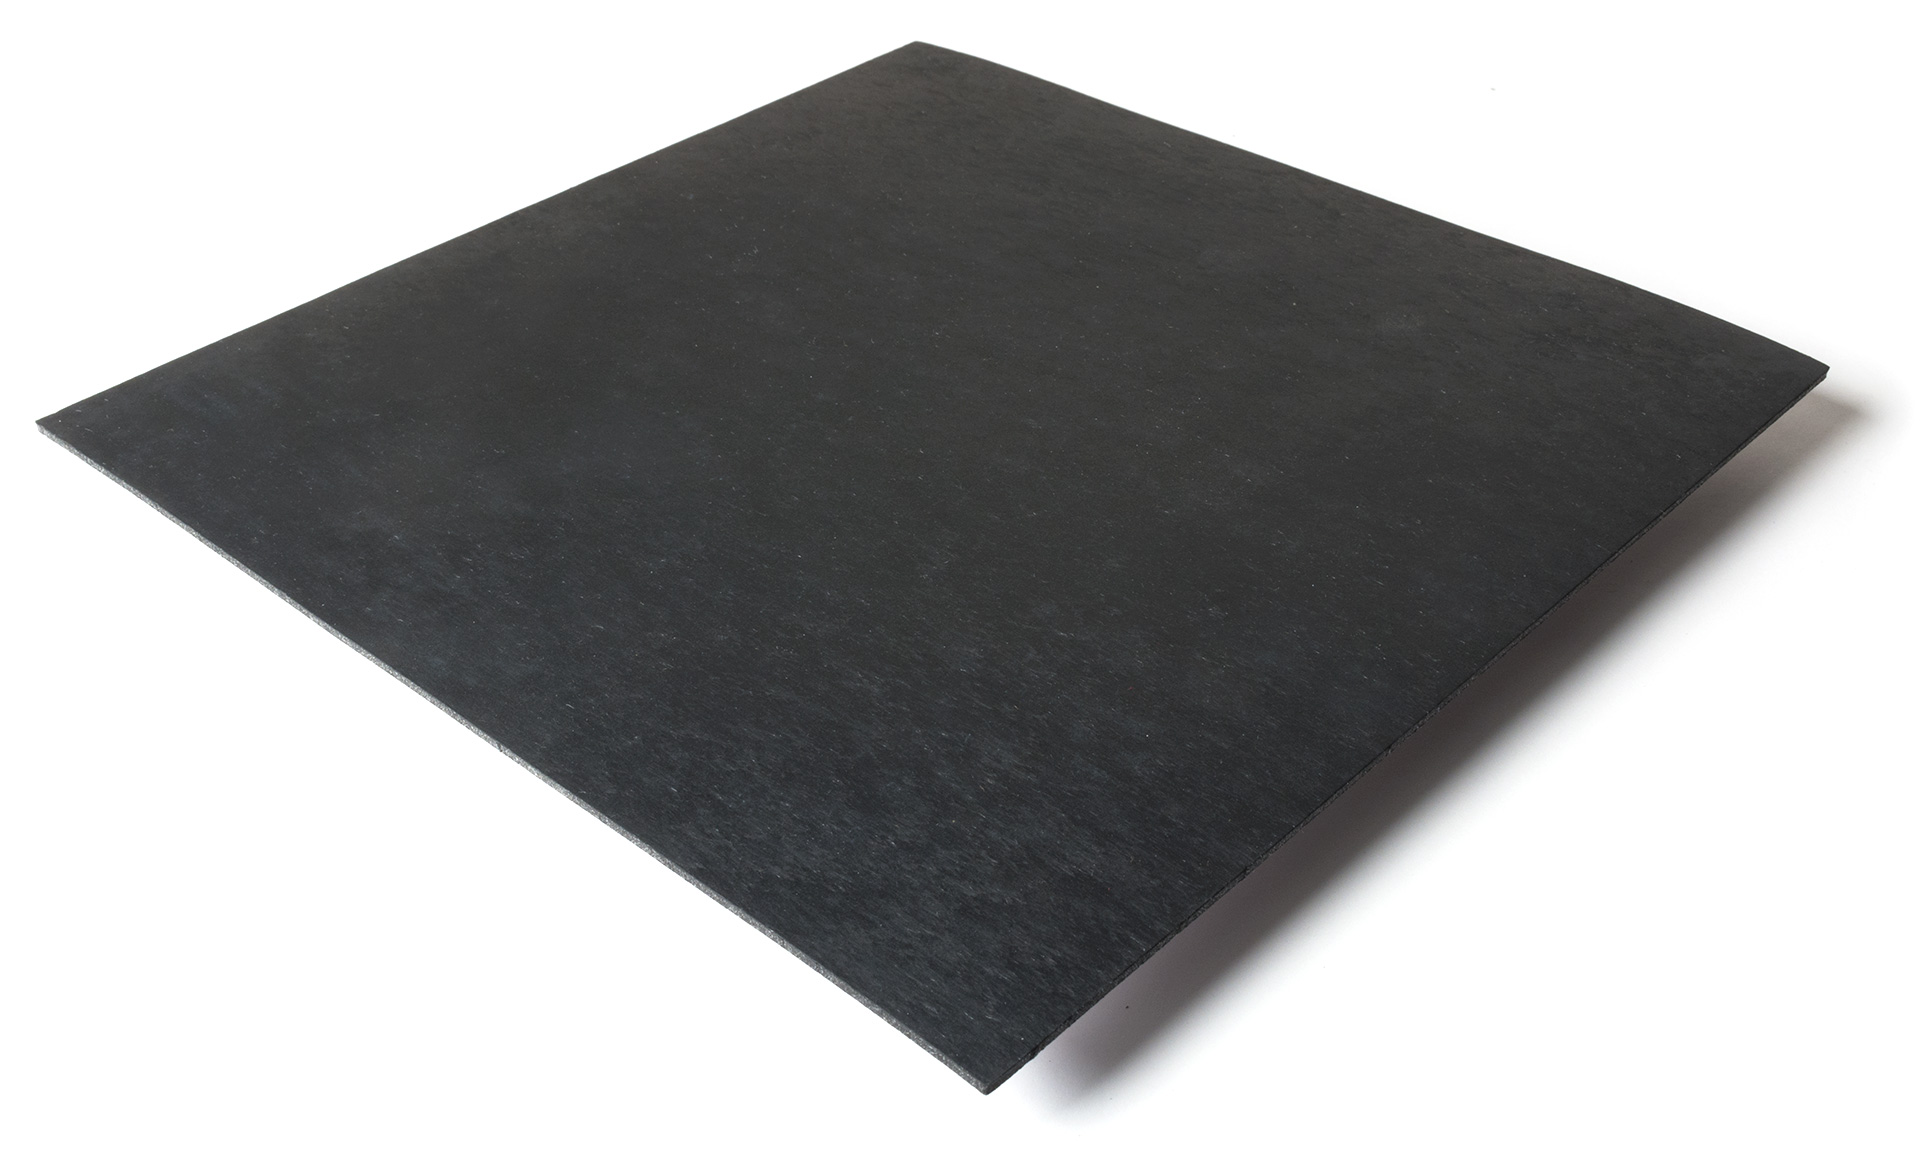 Standard transit flooring in black, smooth